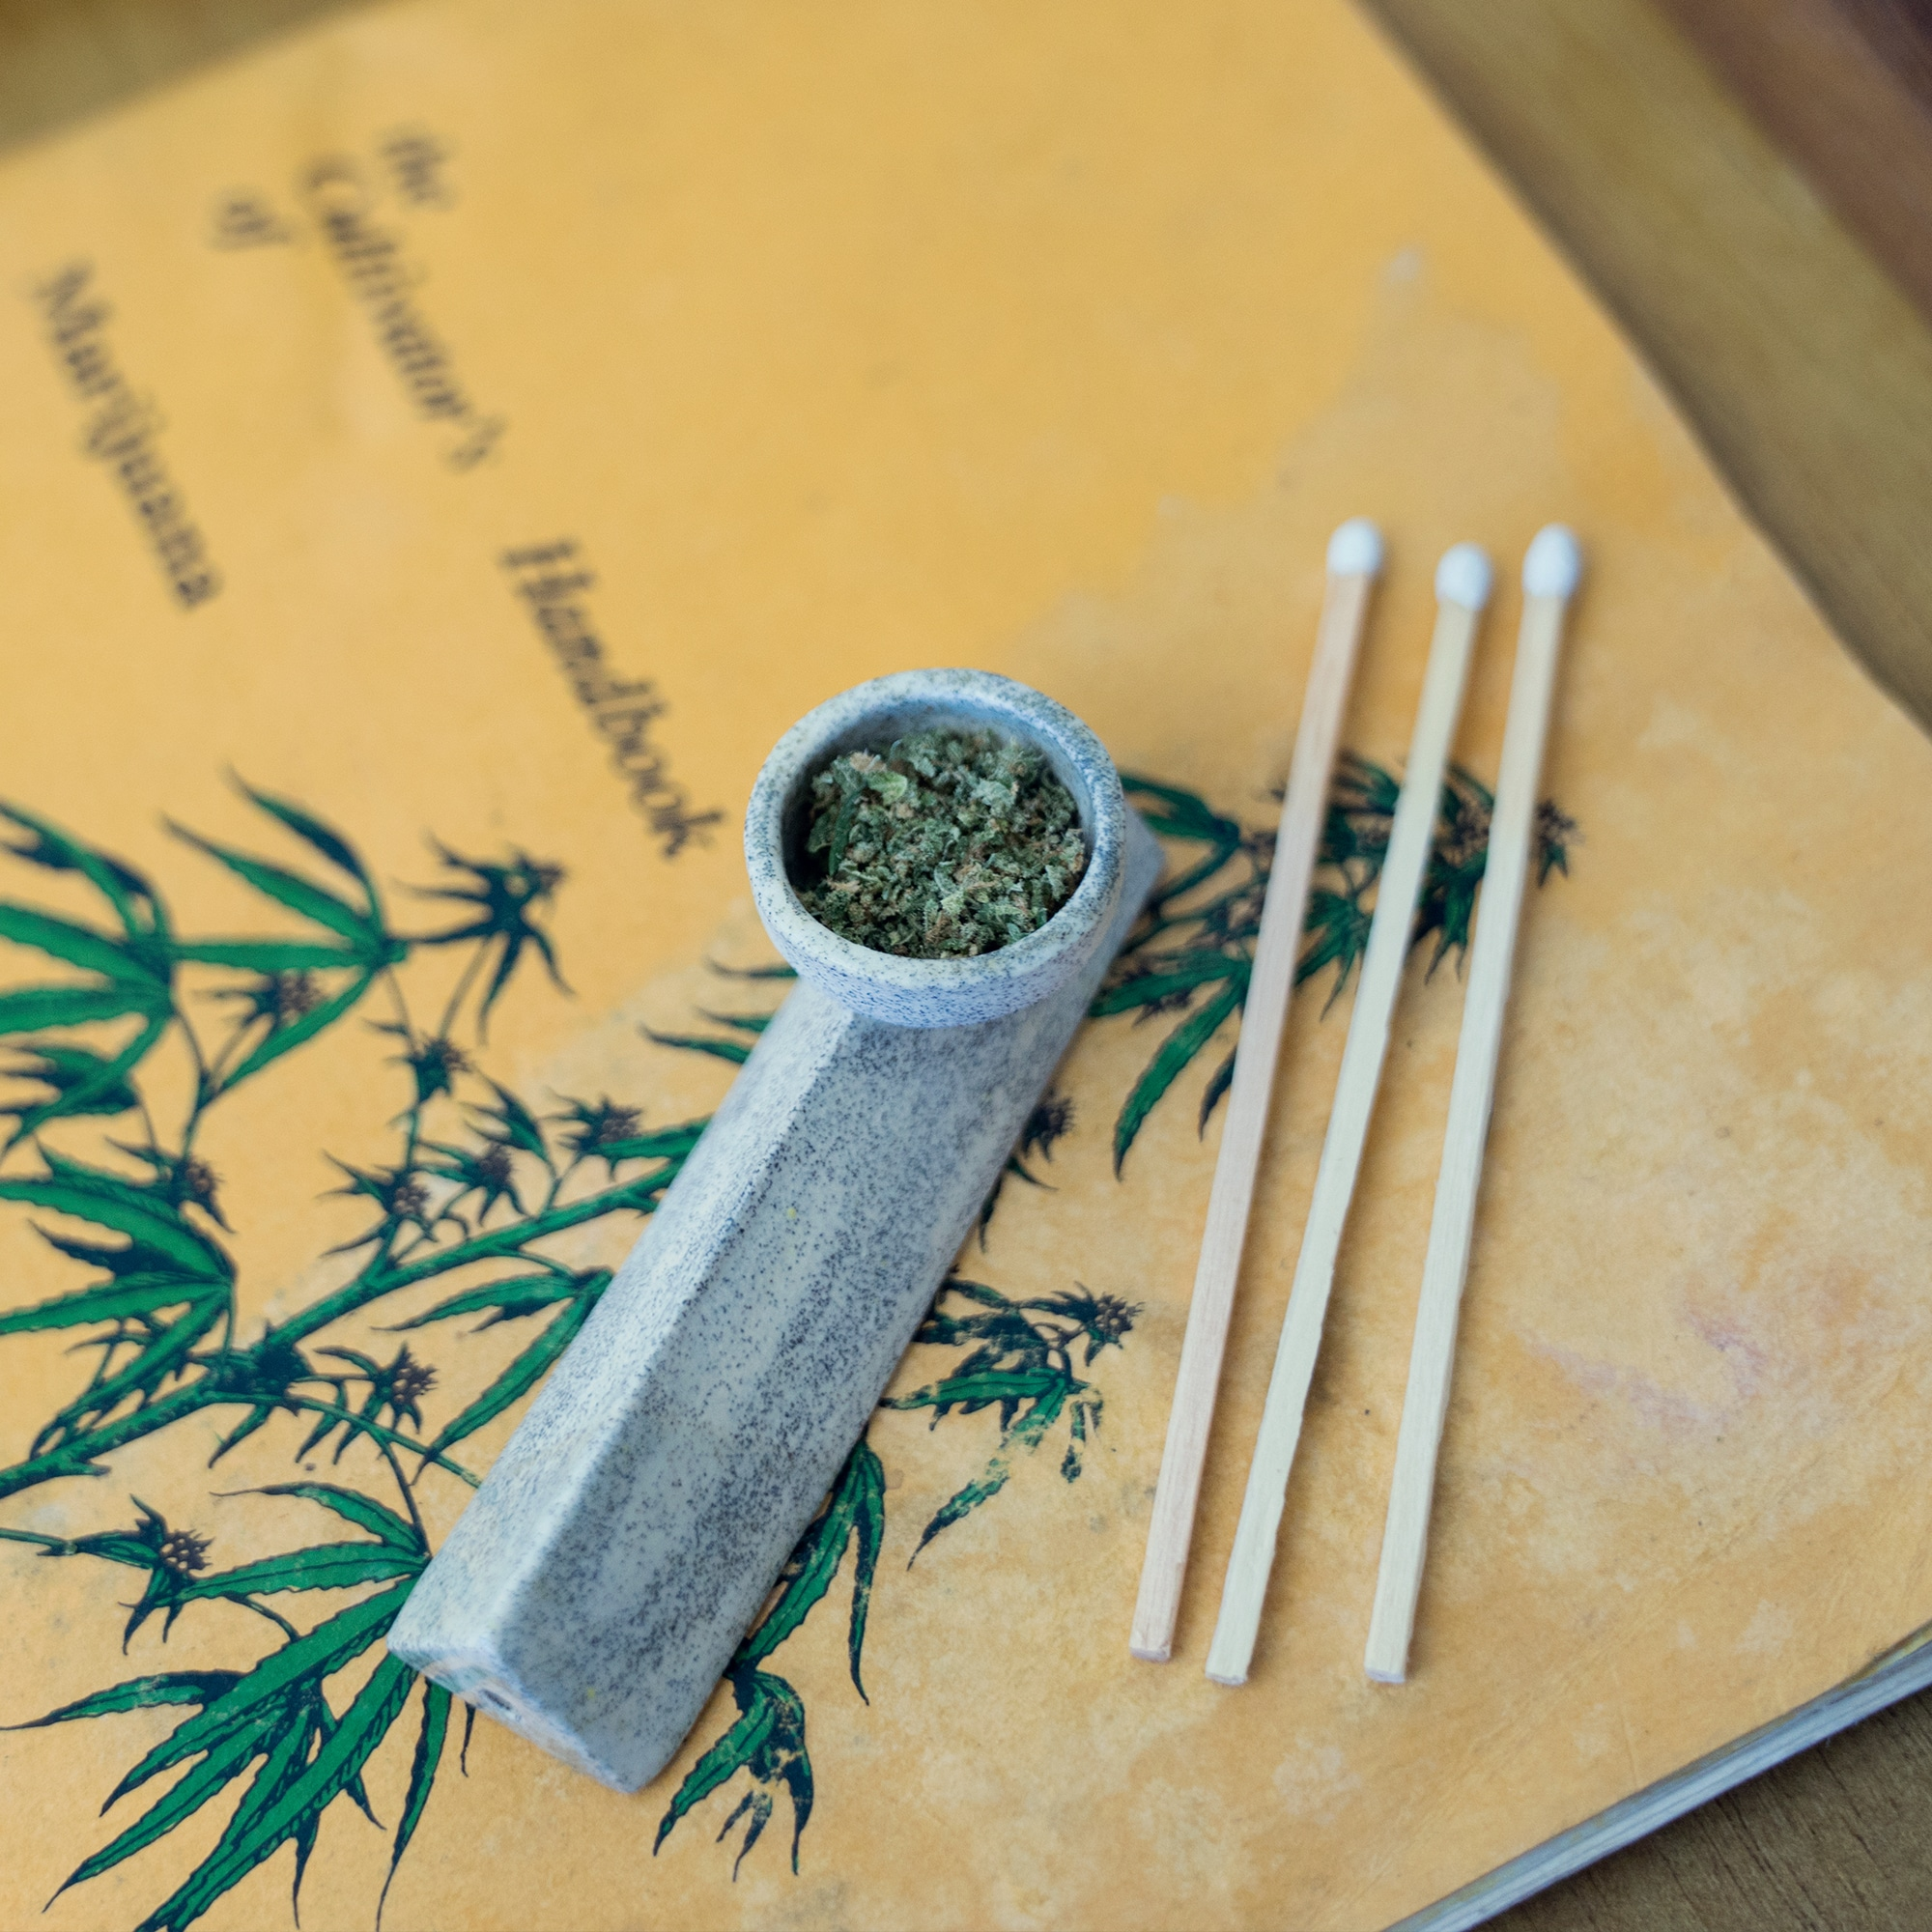 Close up image of Cannabis pipe and matches